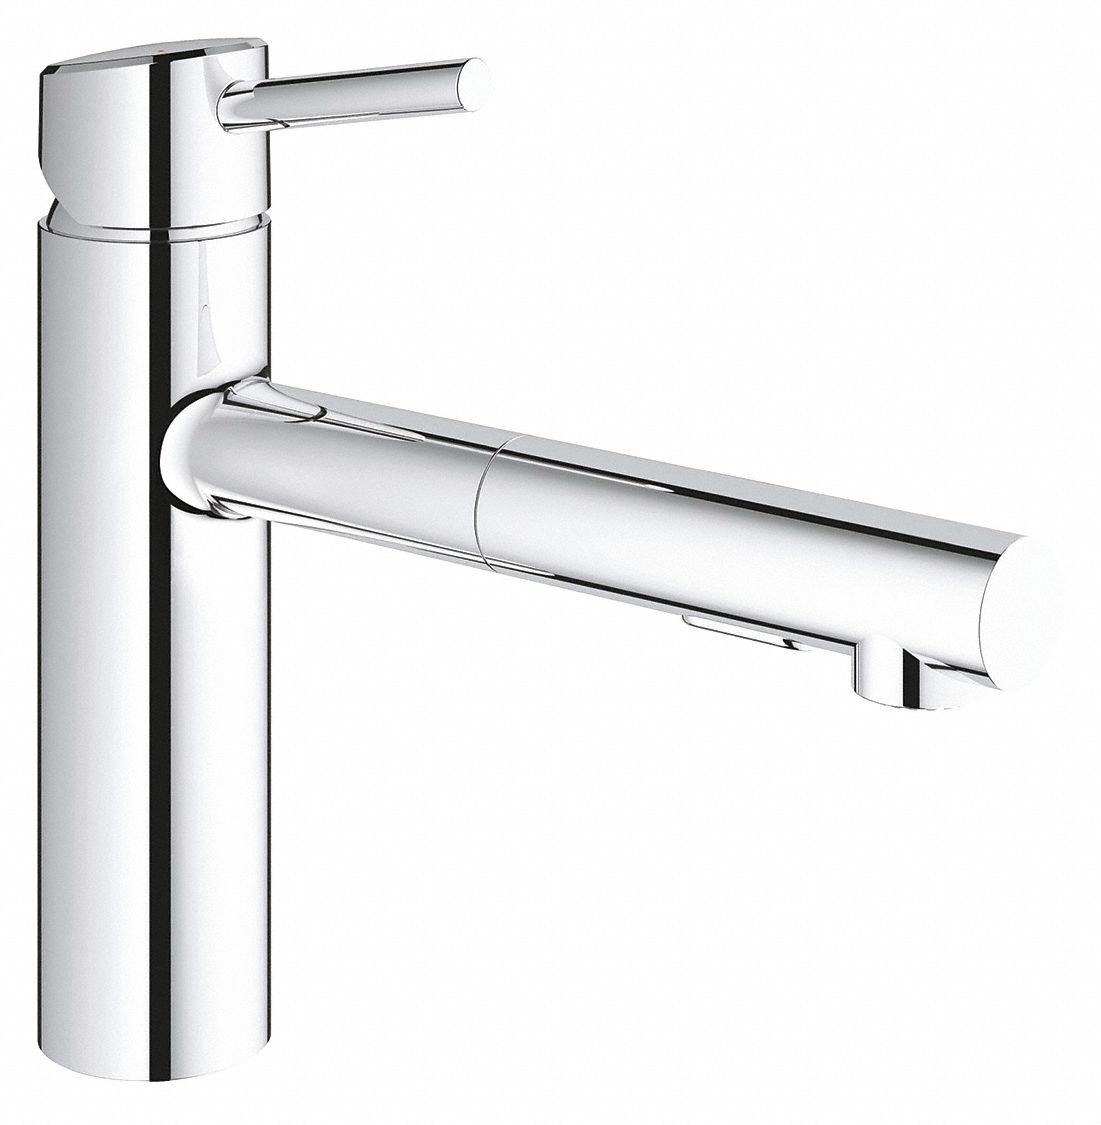 chrome straight kitchen sink faucet manual faucet activation 1 5 gpm